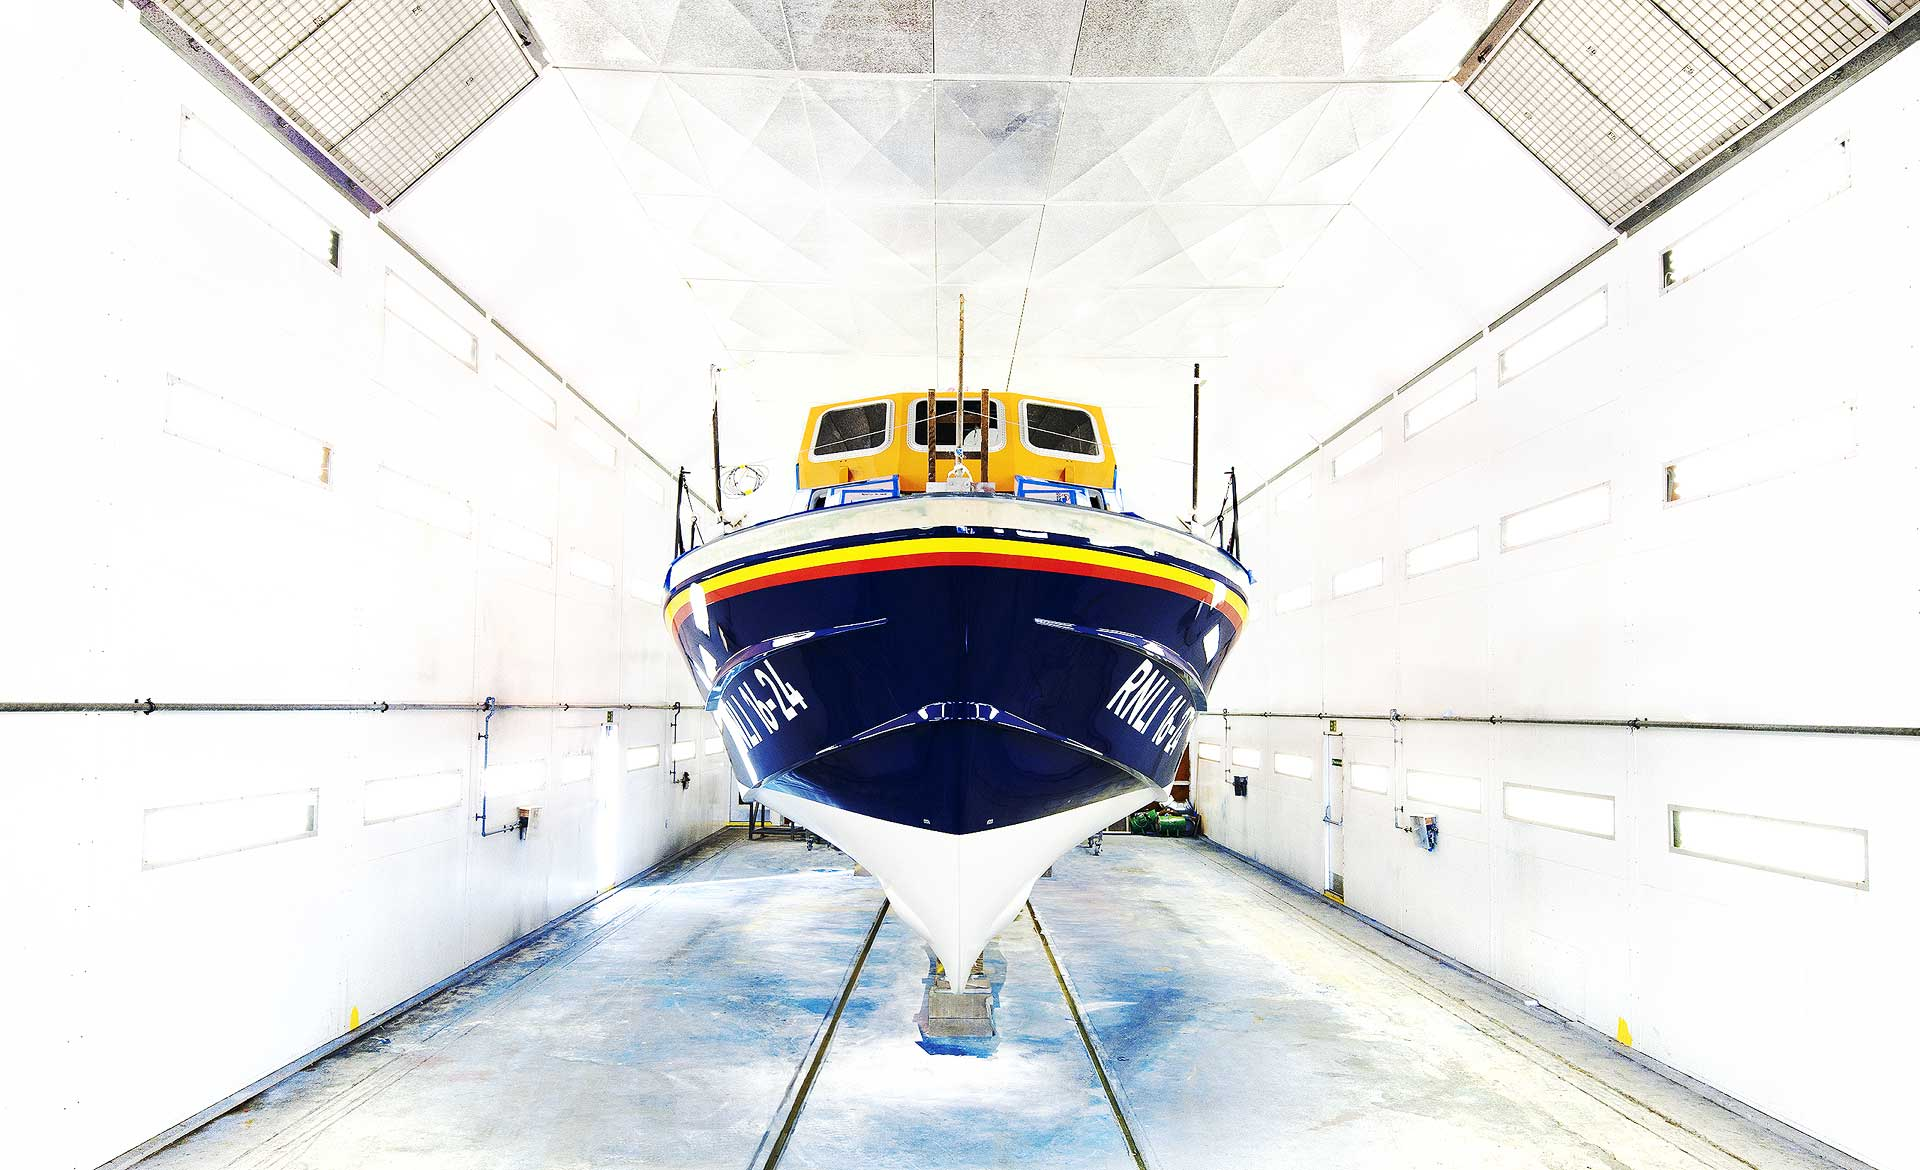 lifeboat-finisterre-goodfromyou-16.jpg